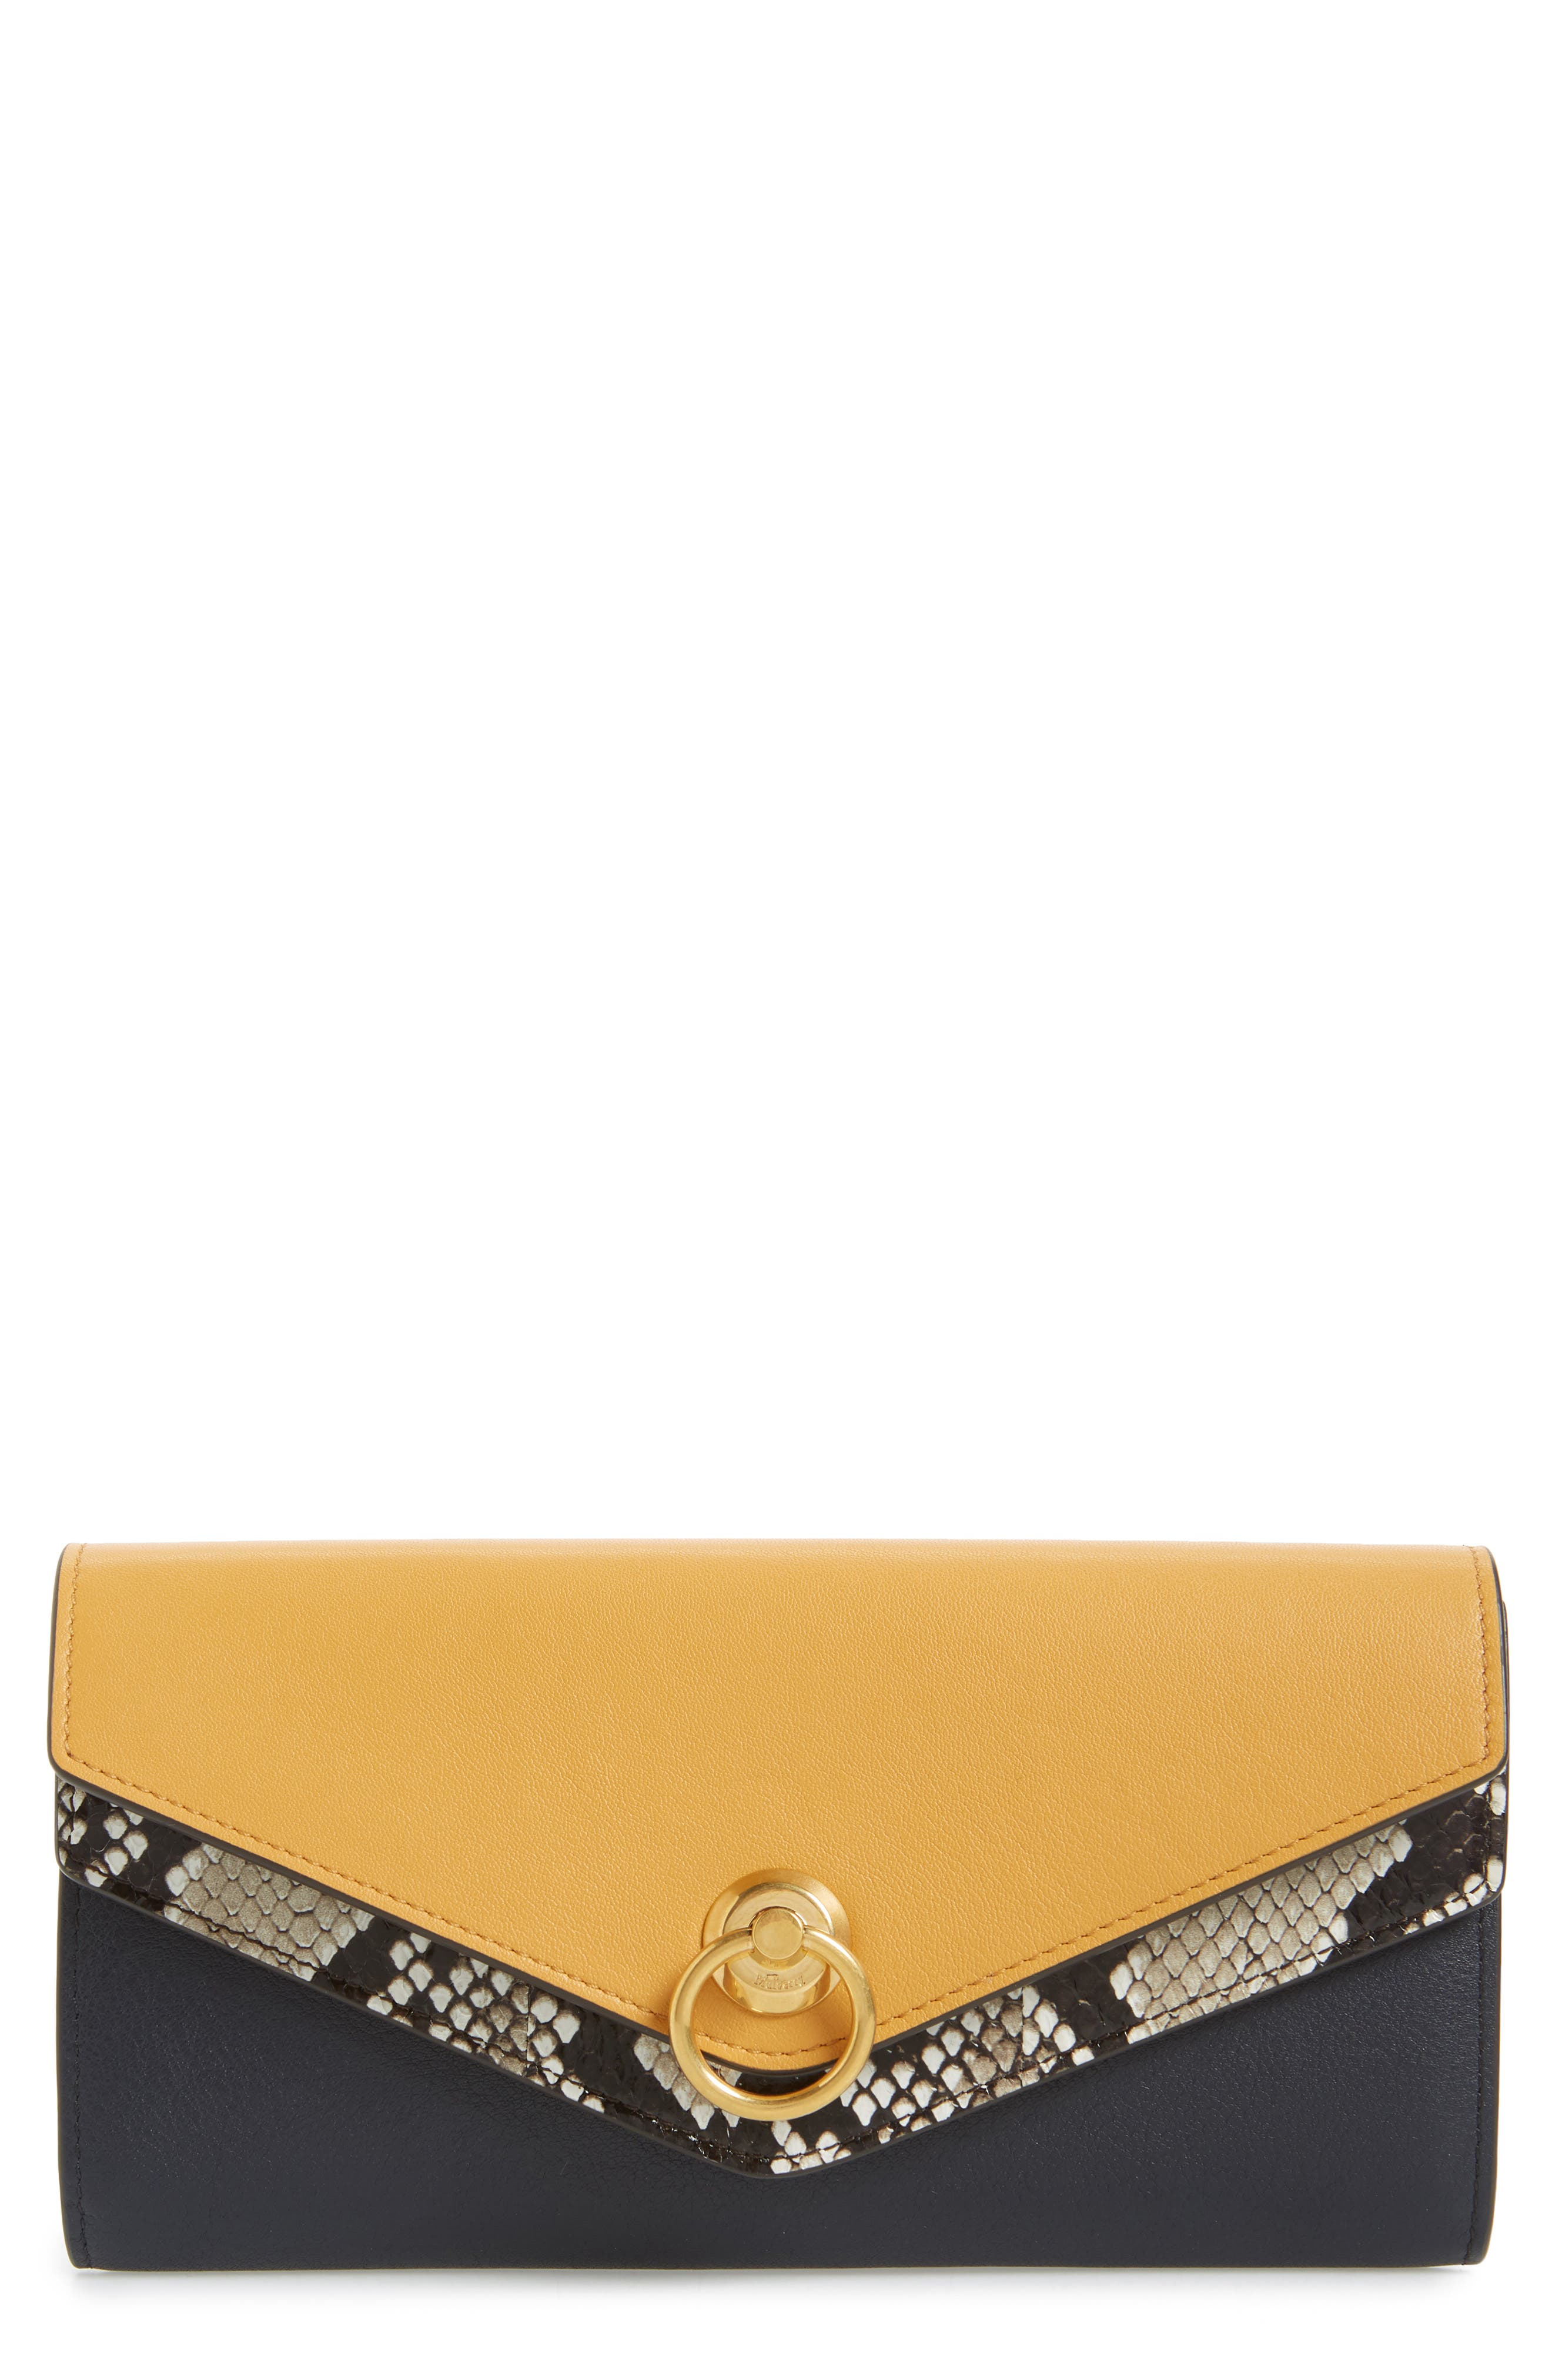 MULBERRY Mulberrry Harlow Calfskin Leather & Genuine Snakeskin Wallet, Main, color, MAIZE YELLOW/ MIDNIGHT